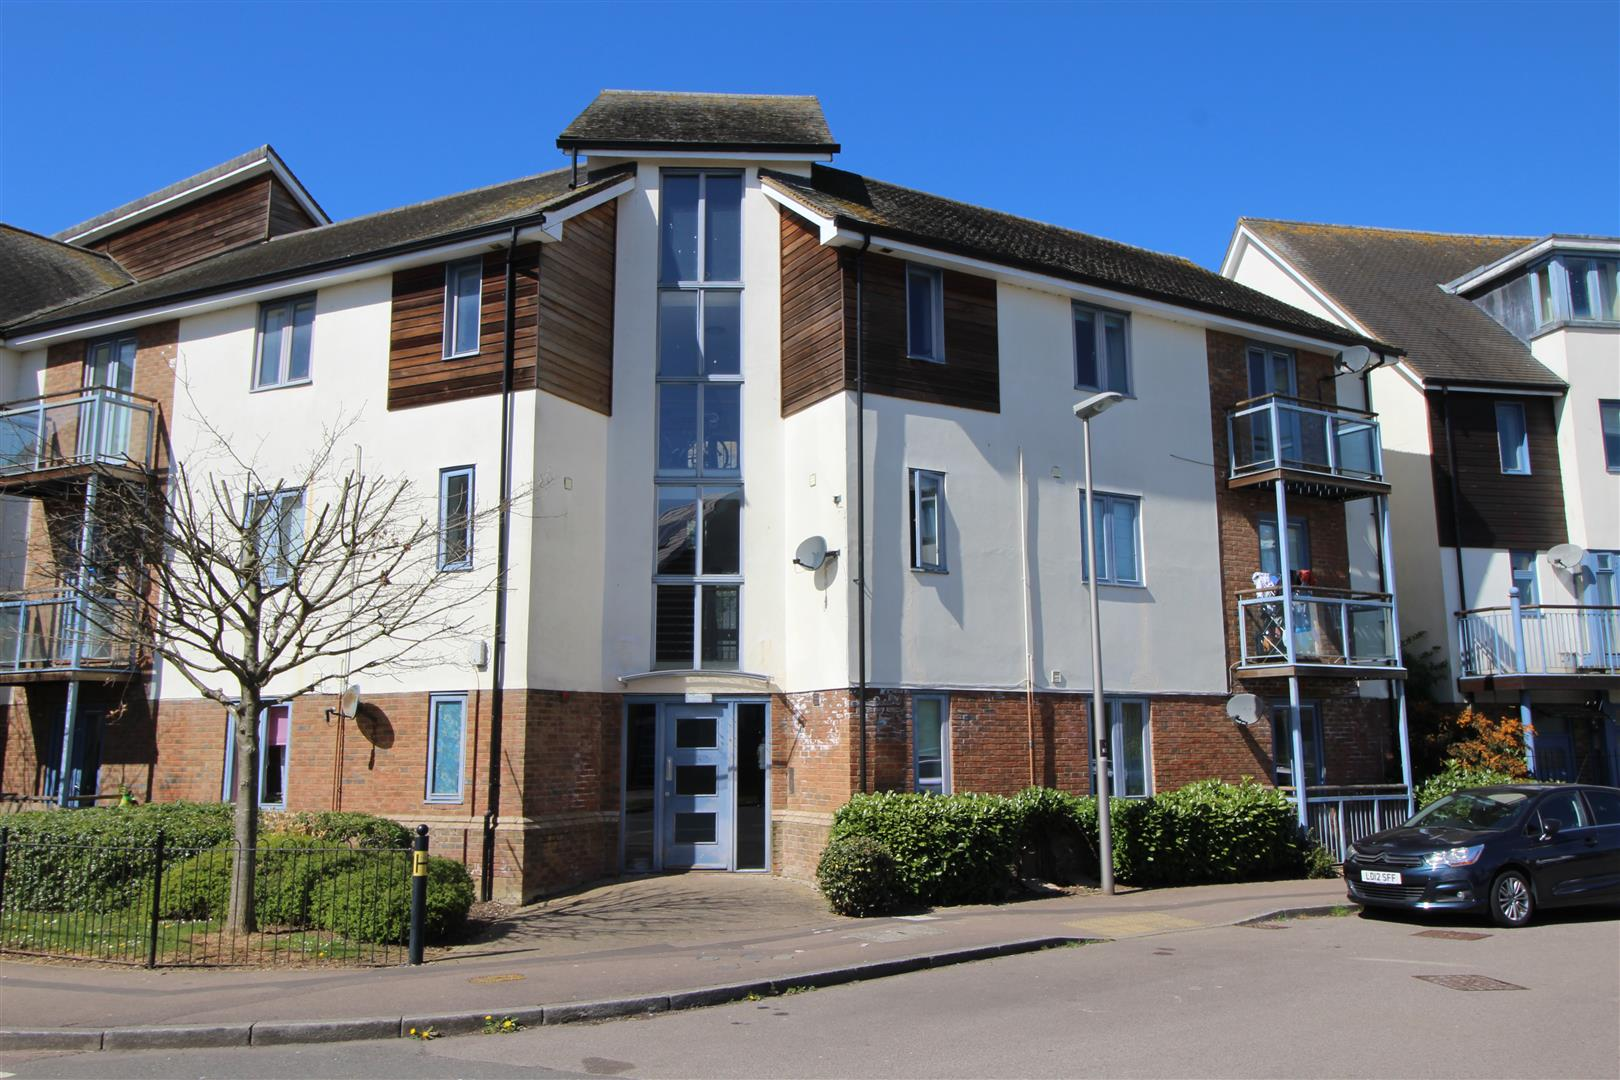 EXCELLENT LOCATION OVERLOOKING OPEN GRASS LAND AND THE BROUGHTON BROOK TO THE FRONT whilst only a short walk from the local centre. Newly decorated and re-carpeted 2 bedroom top floor apartment with a balcony from the lounge overlooking the park land and